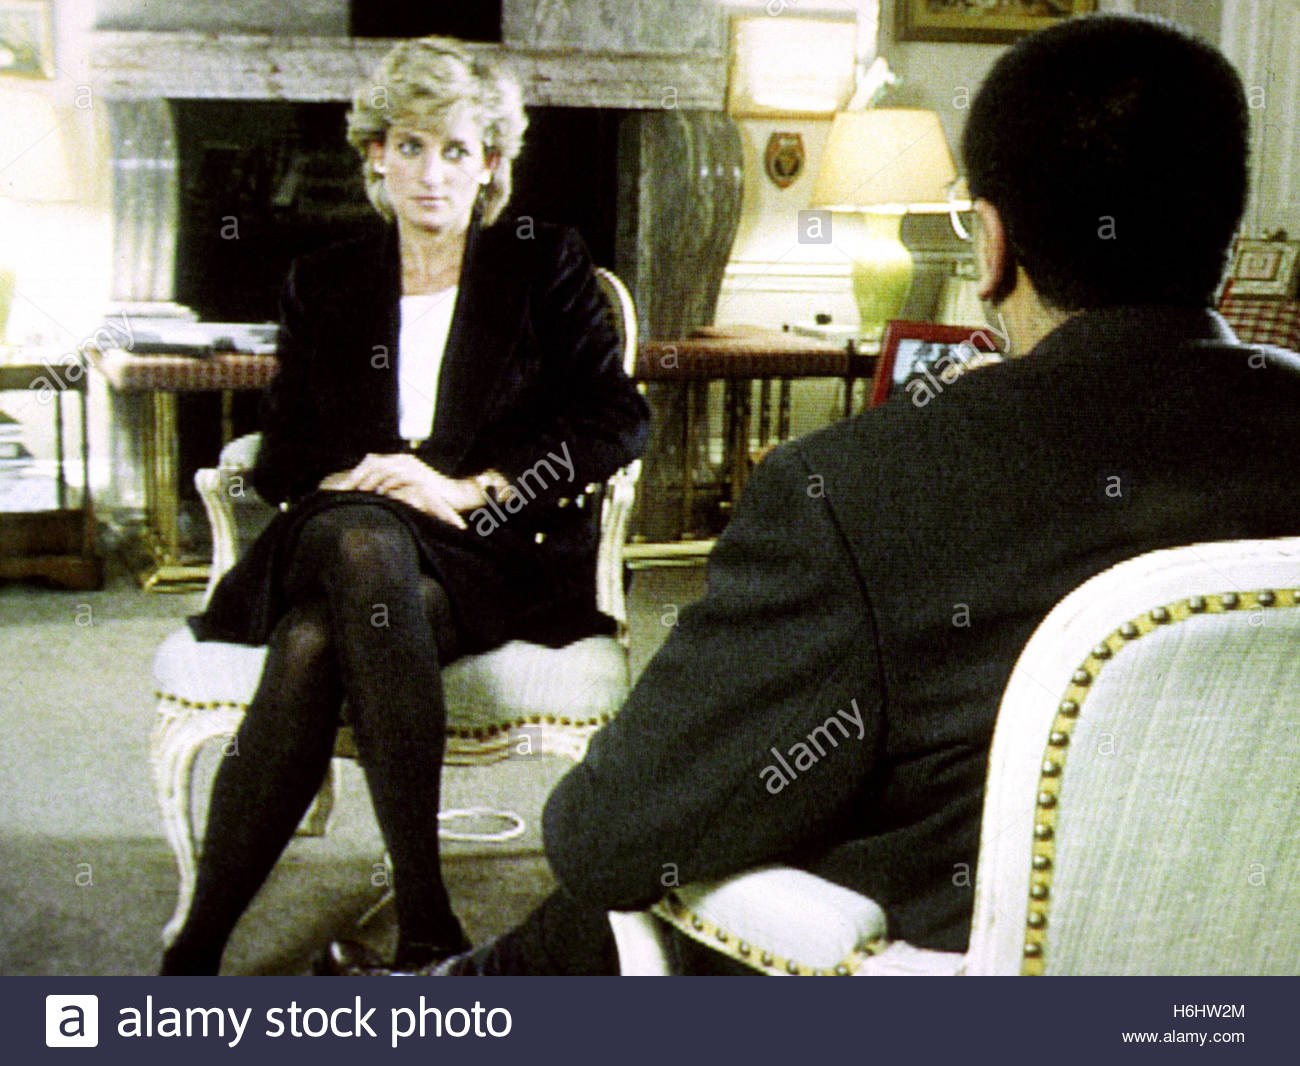 Embargoed to 0001 Monday October 31 File photo dated 20/11/95 of Diana, Princess of Wales, during her interview Stock Photo